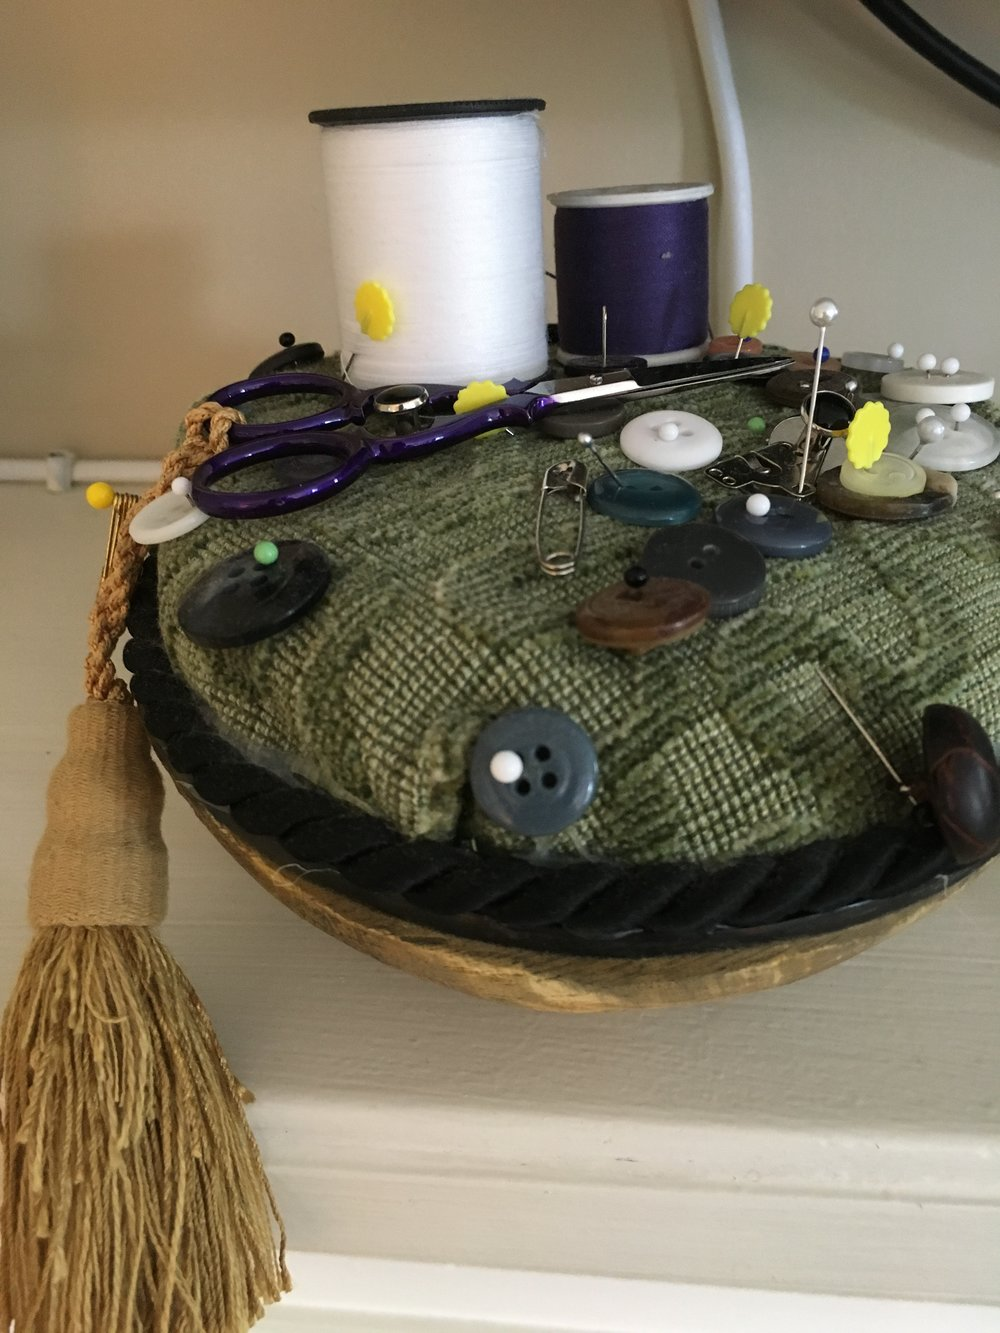 An adorable way to leave an old-world sewing kit on the mantle for guests